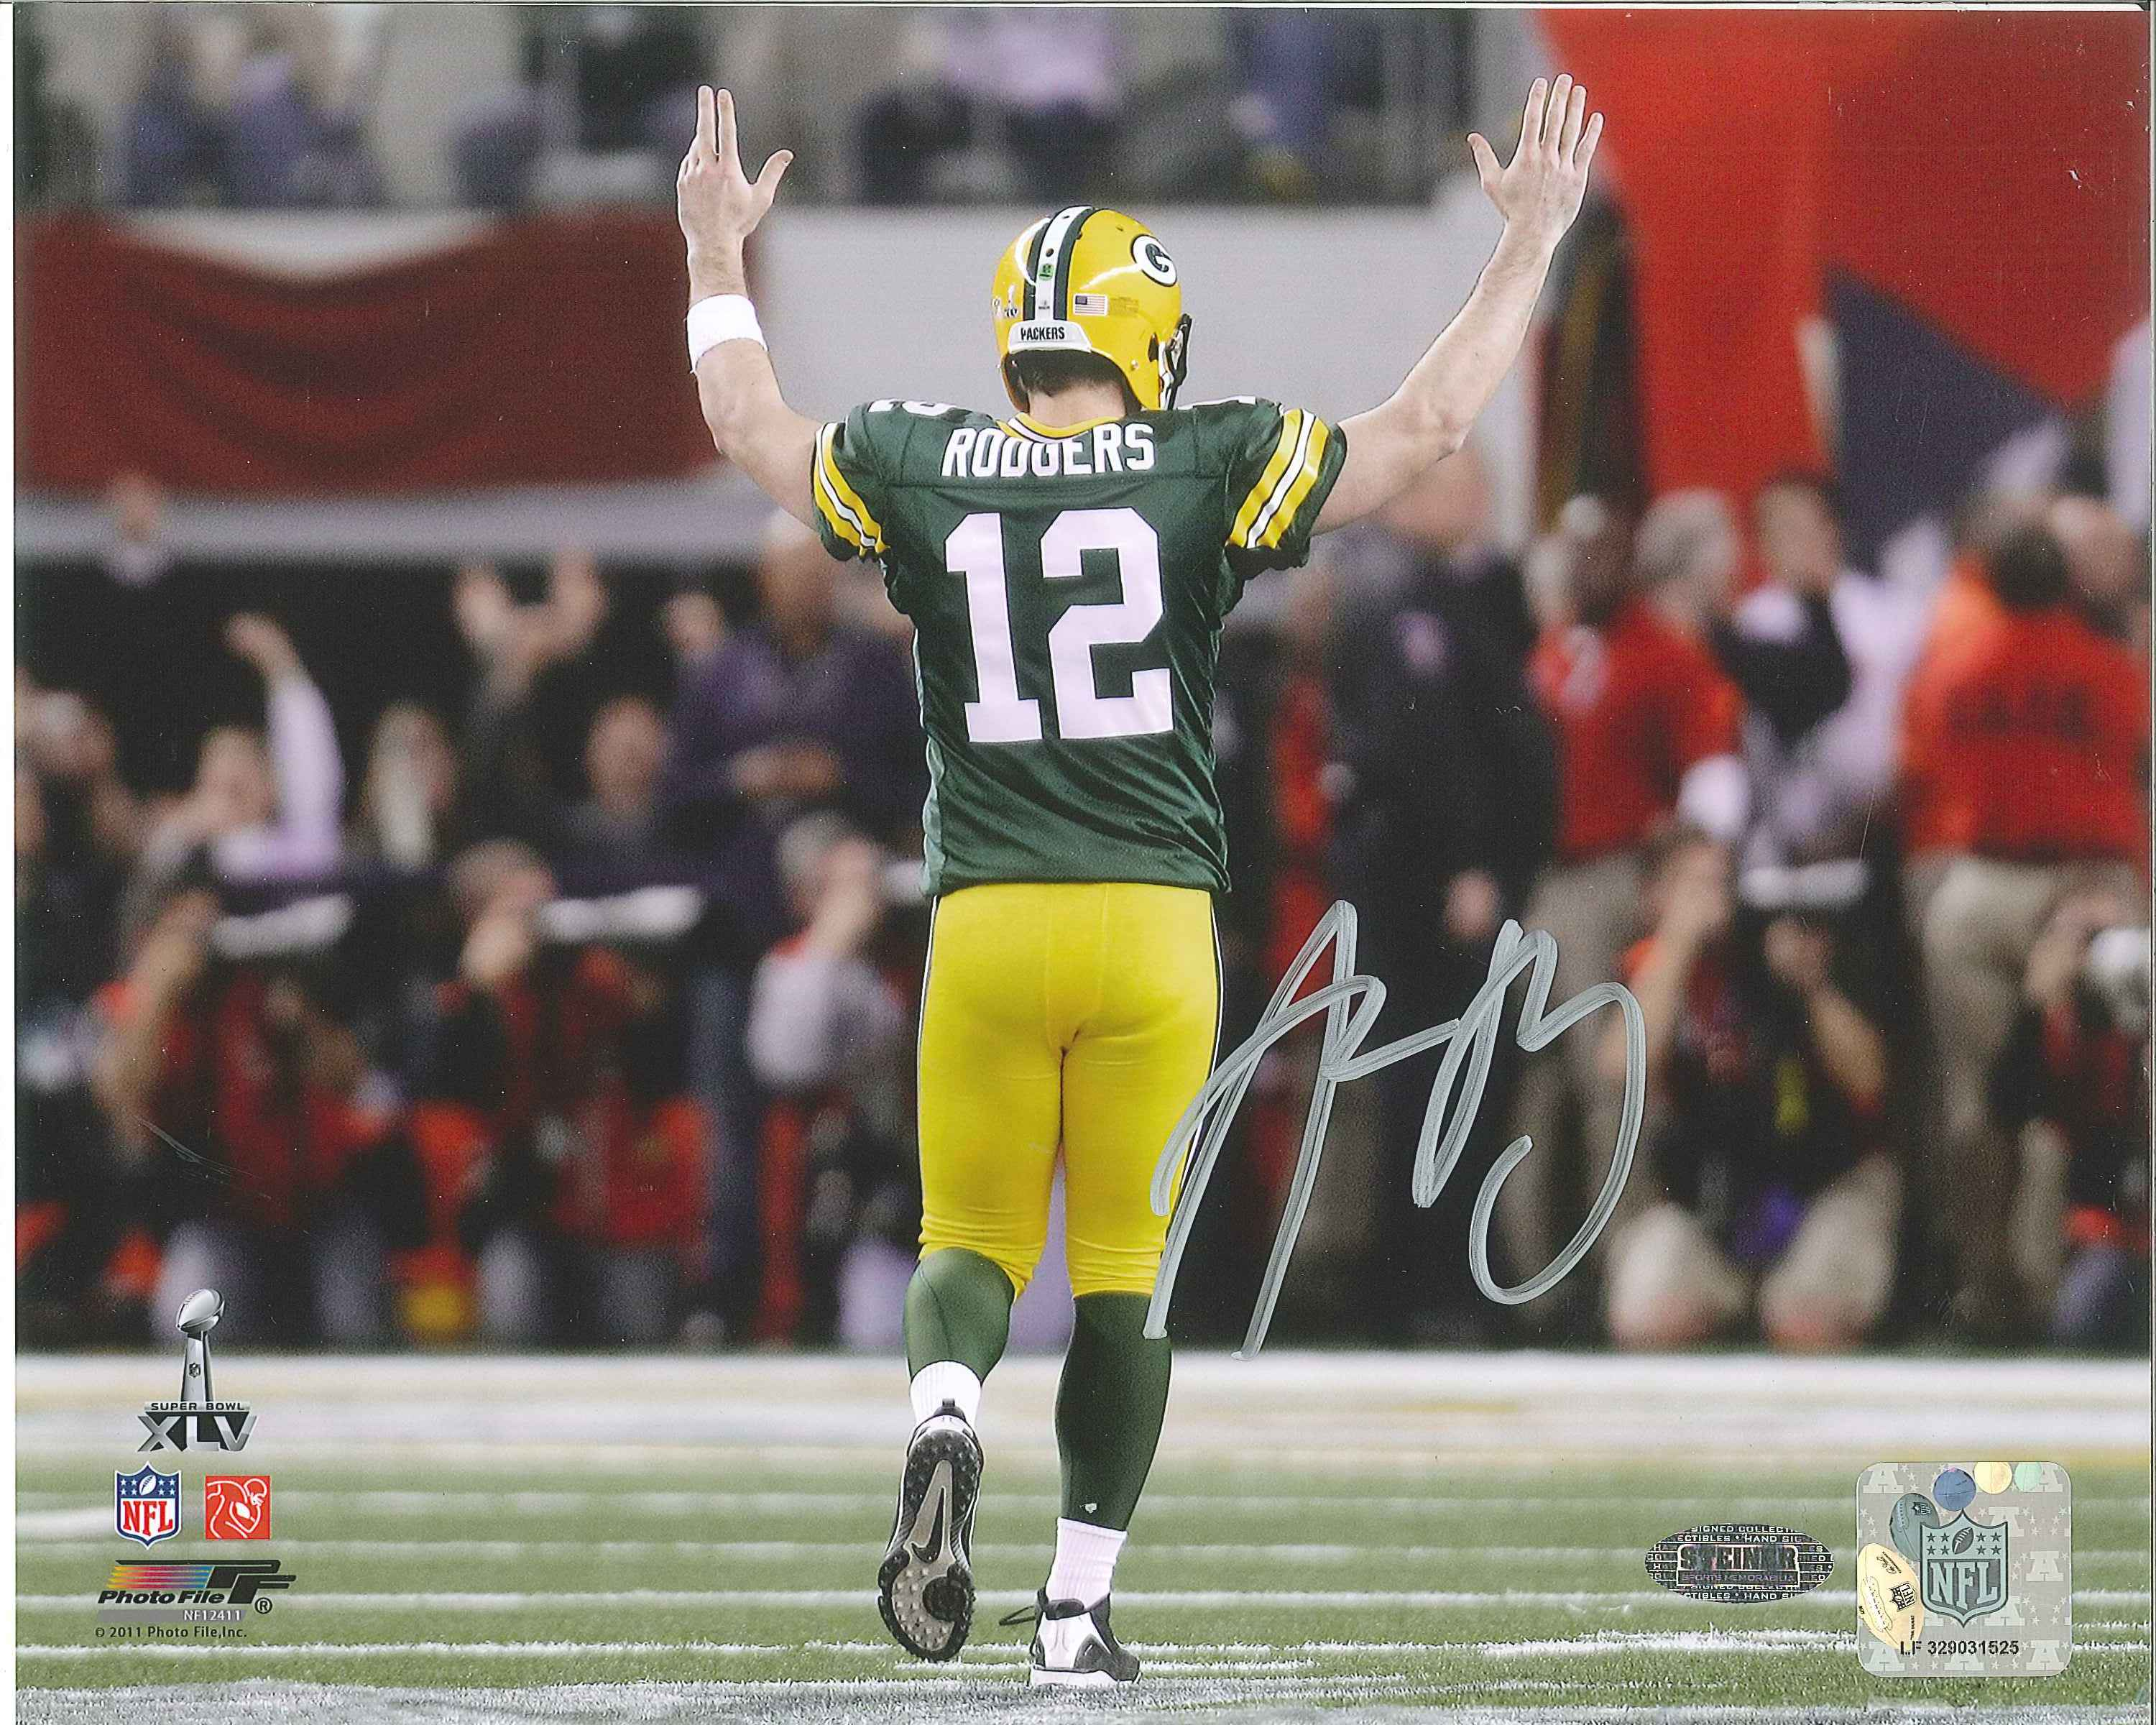 4df456743 ... Aaron Rodgers Autographed Green Bay Packers 8 x 10 Photo.  West Coast Authentic NFL Packers Aaron Rodgers Autographed Photo(2)